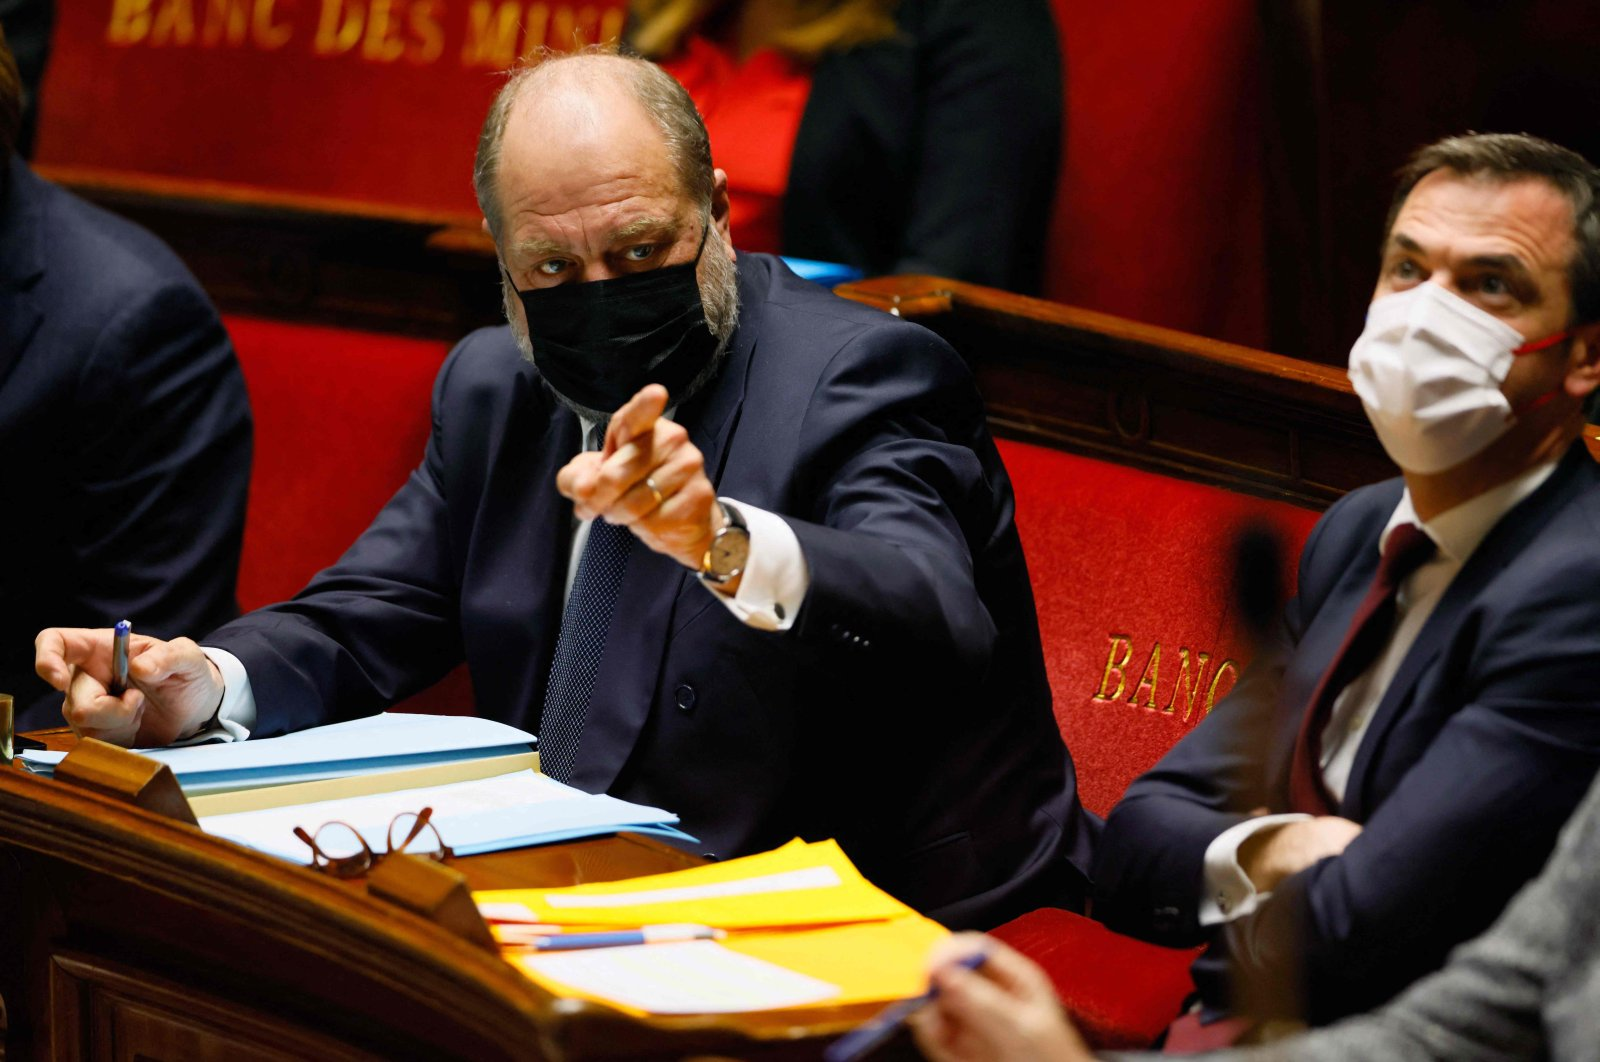 French Justice Minister Eric Dupond-Moretti (L) gestures next to French Health Minister Olivier Veran during a session of questions to the government at The National Assembly, Paris, March 23, 2021. (AFP Photo)